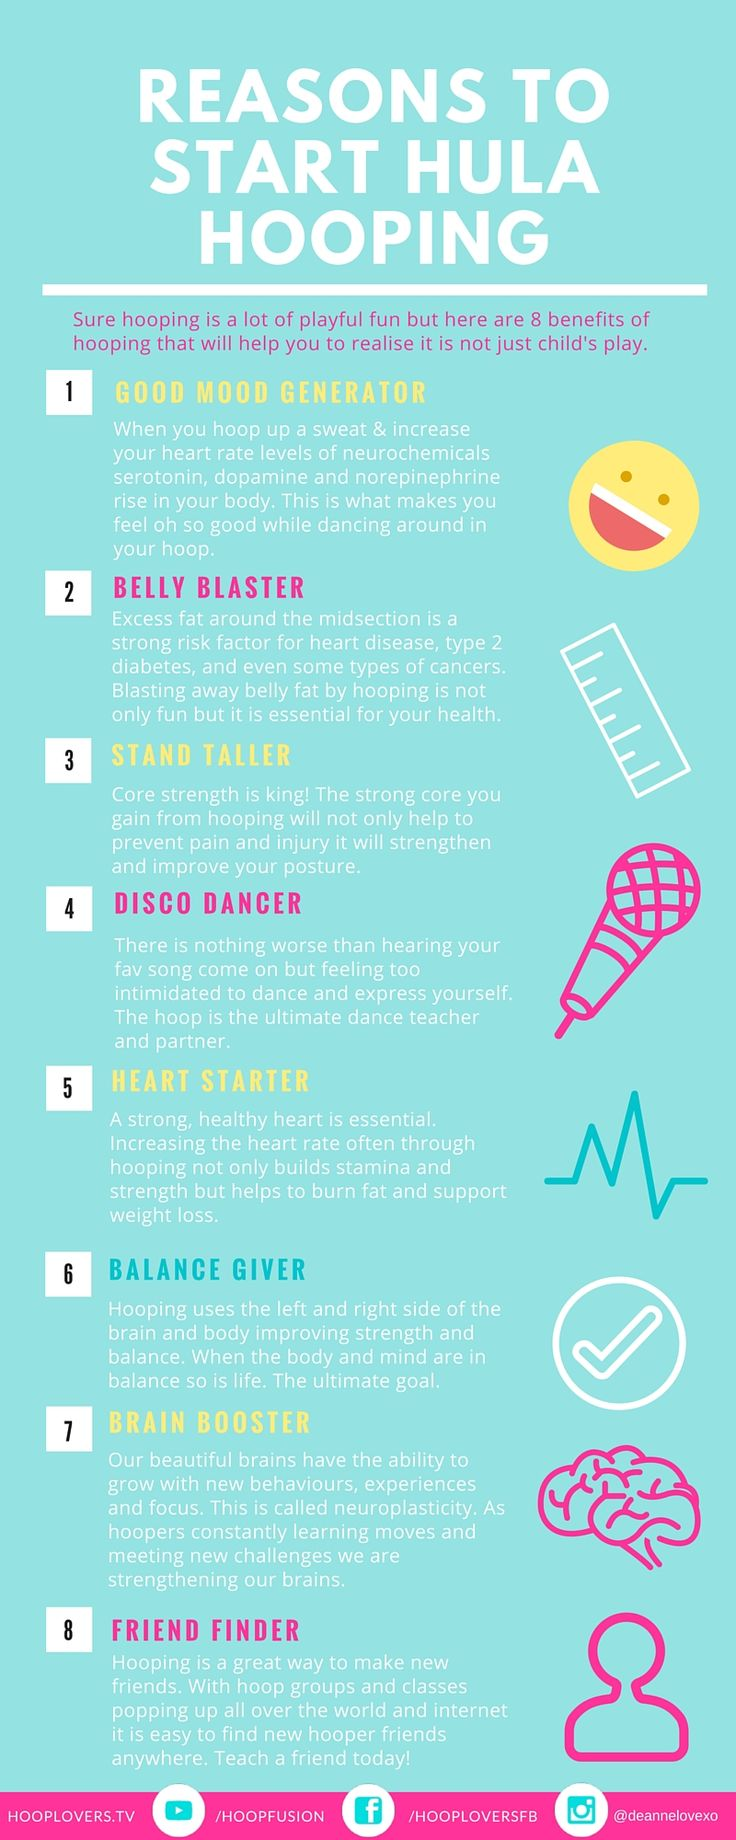 8 Reasons Why You Need to Get Yourself a Hula Hoop in 2016 http://hooplovers.tv/8-reasons-why-you-need-to-start-hula-hooping-in-2016/